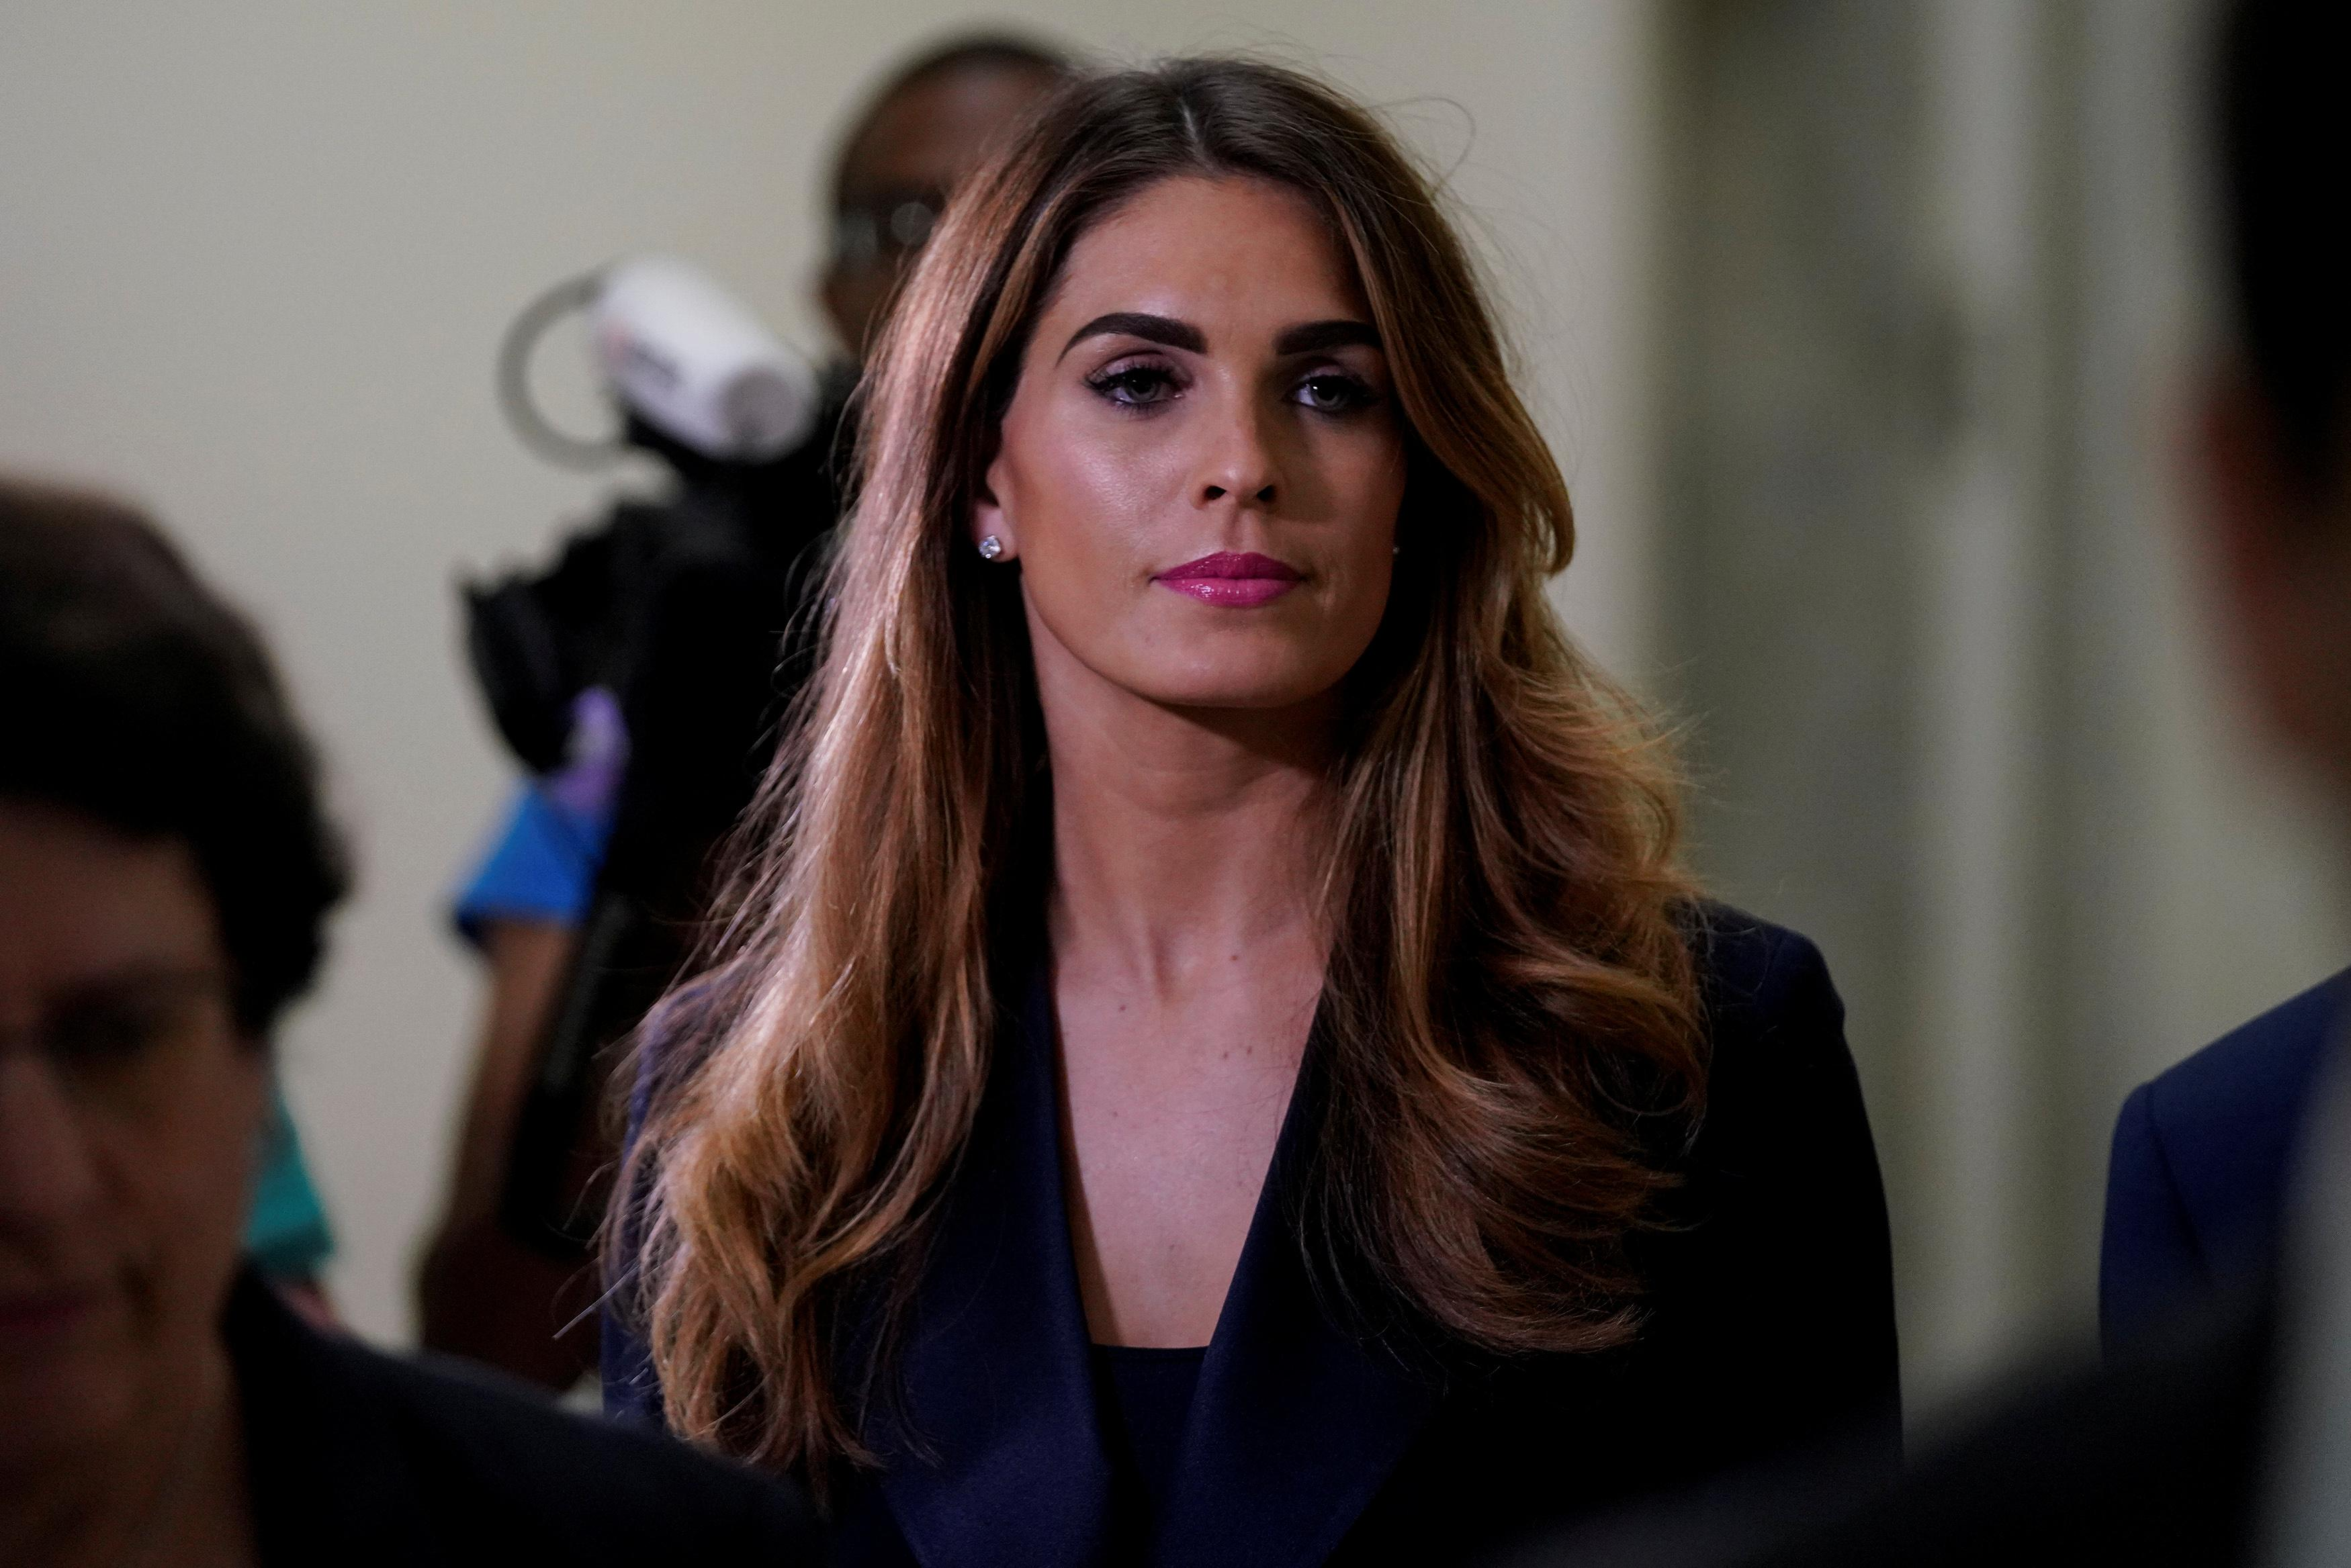 Former Trump aide Hope Hicks arrives for closed congressional testimony